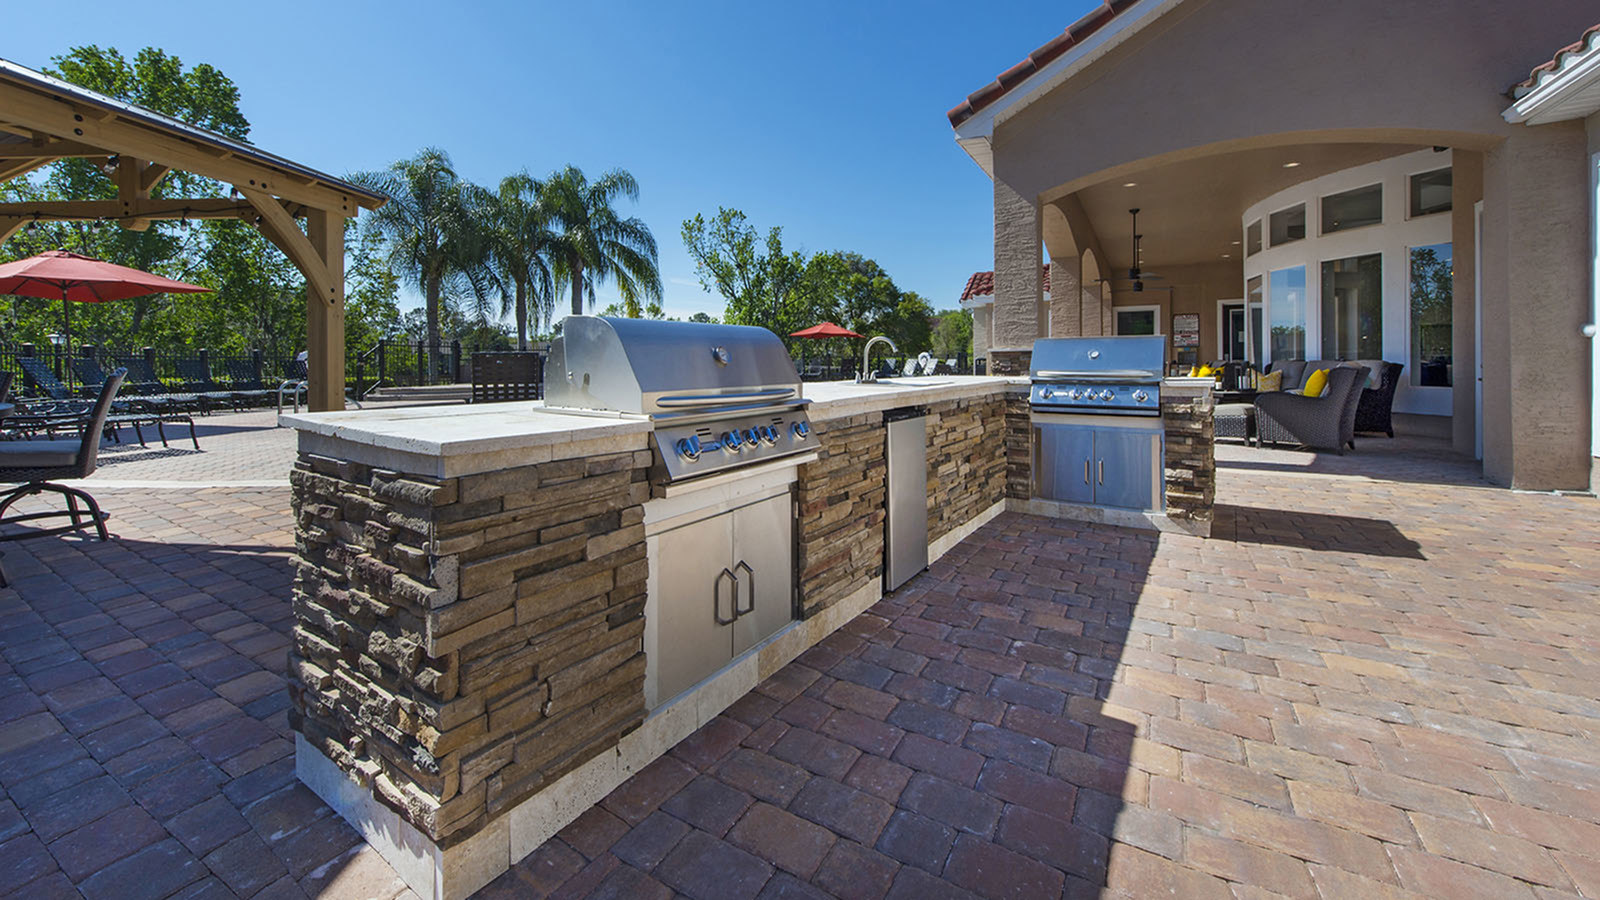 Outdoor grills on brick pavers. Trees and pool in background.